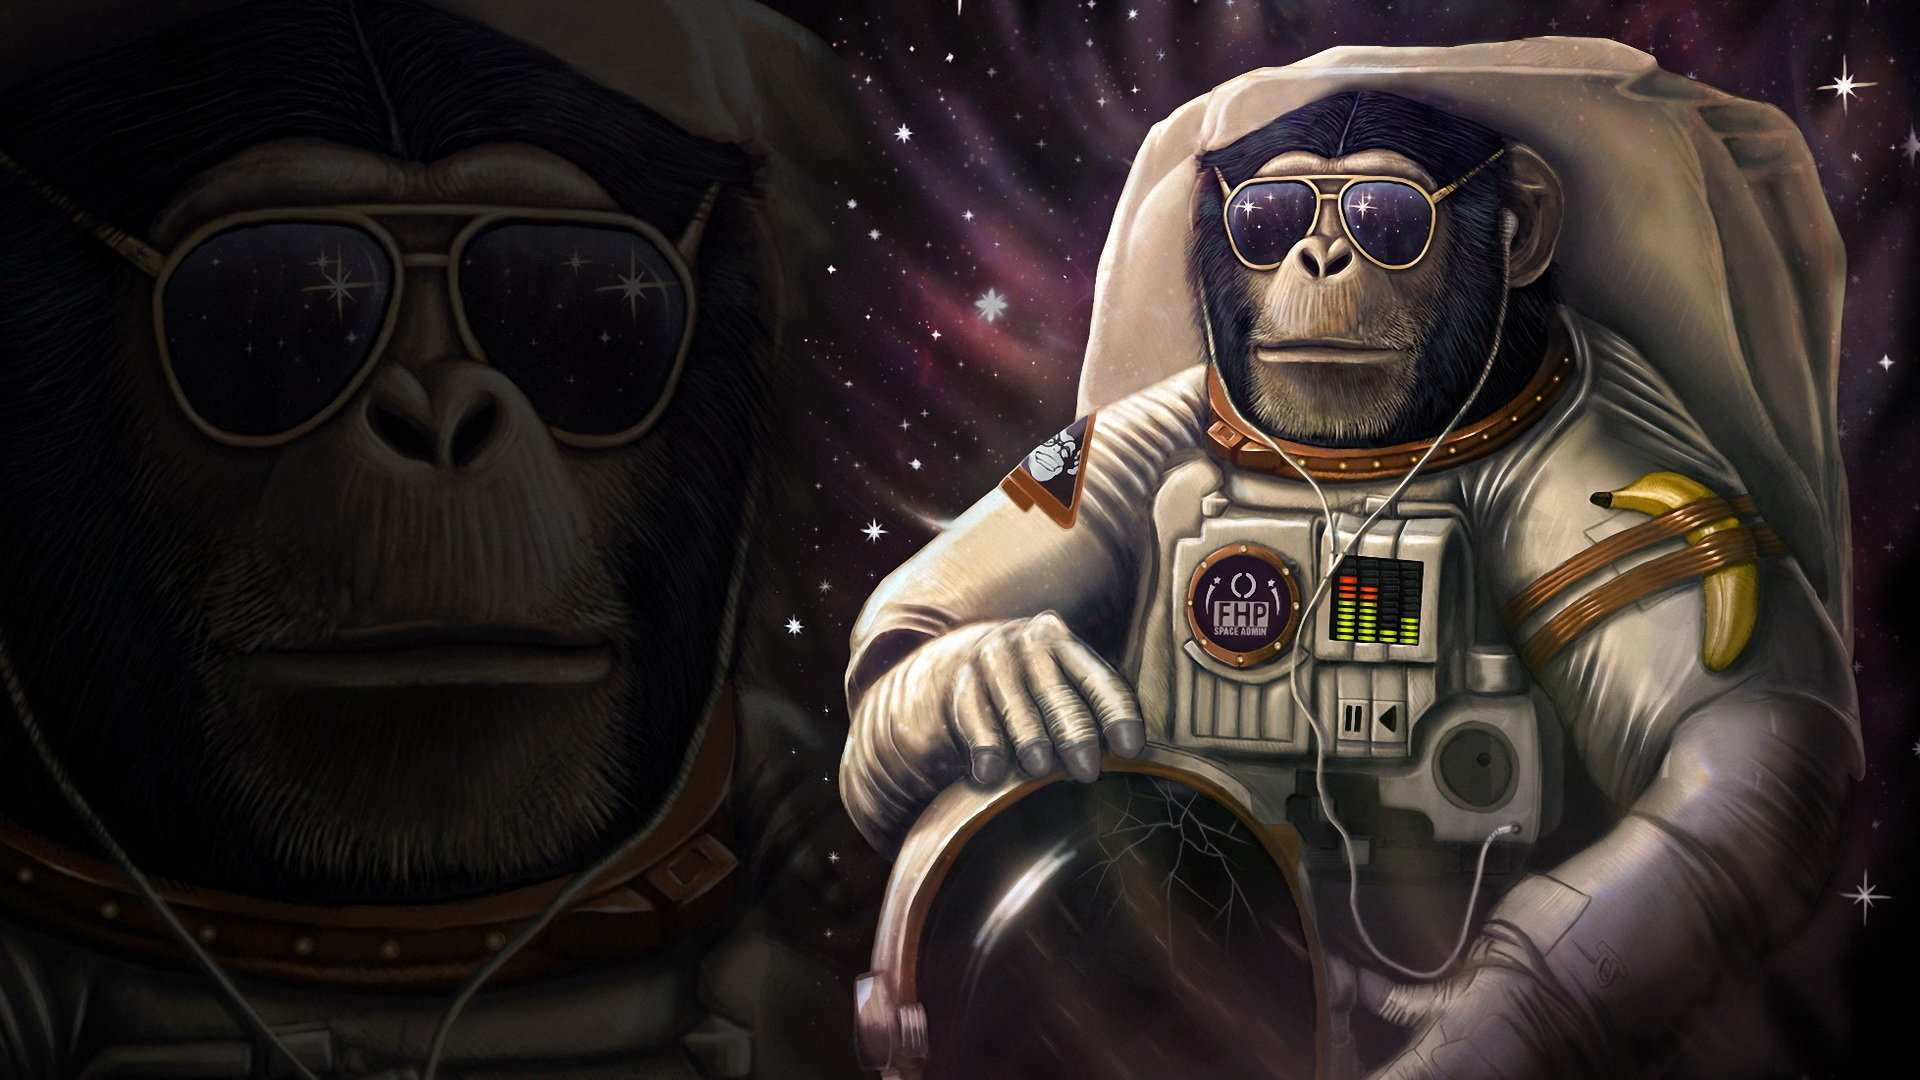 Download full hd 1920x1080 Astronaut computer wallpaper ID:101434 for free